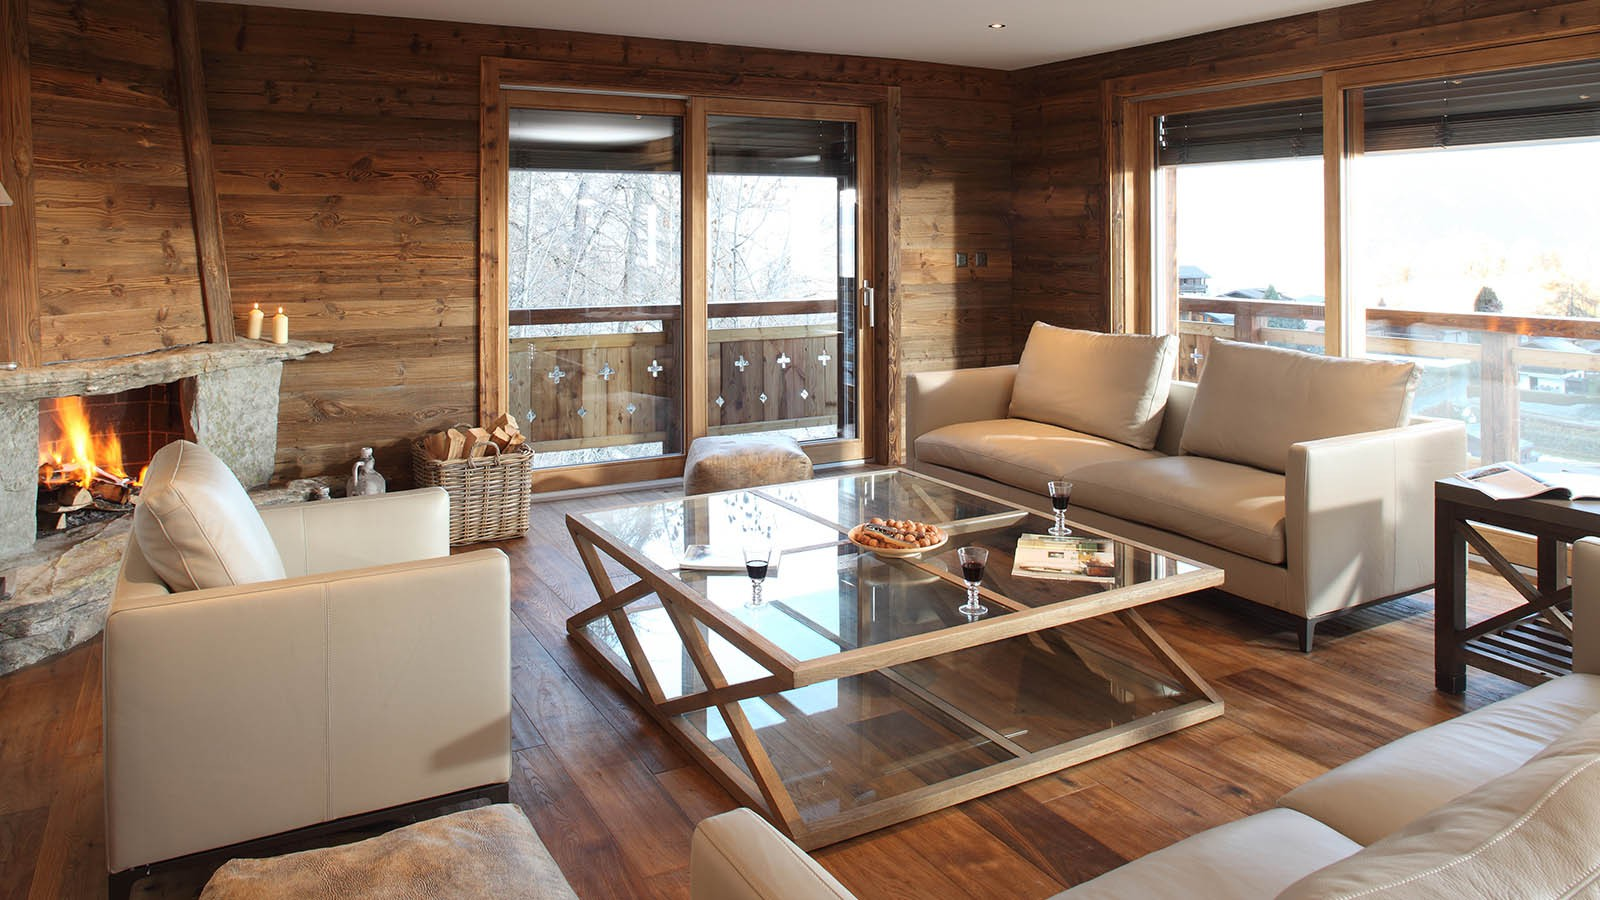 Lounge, Chalet Rosablanche - Ski Chalet in Nendaz, Switzerland